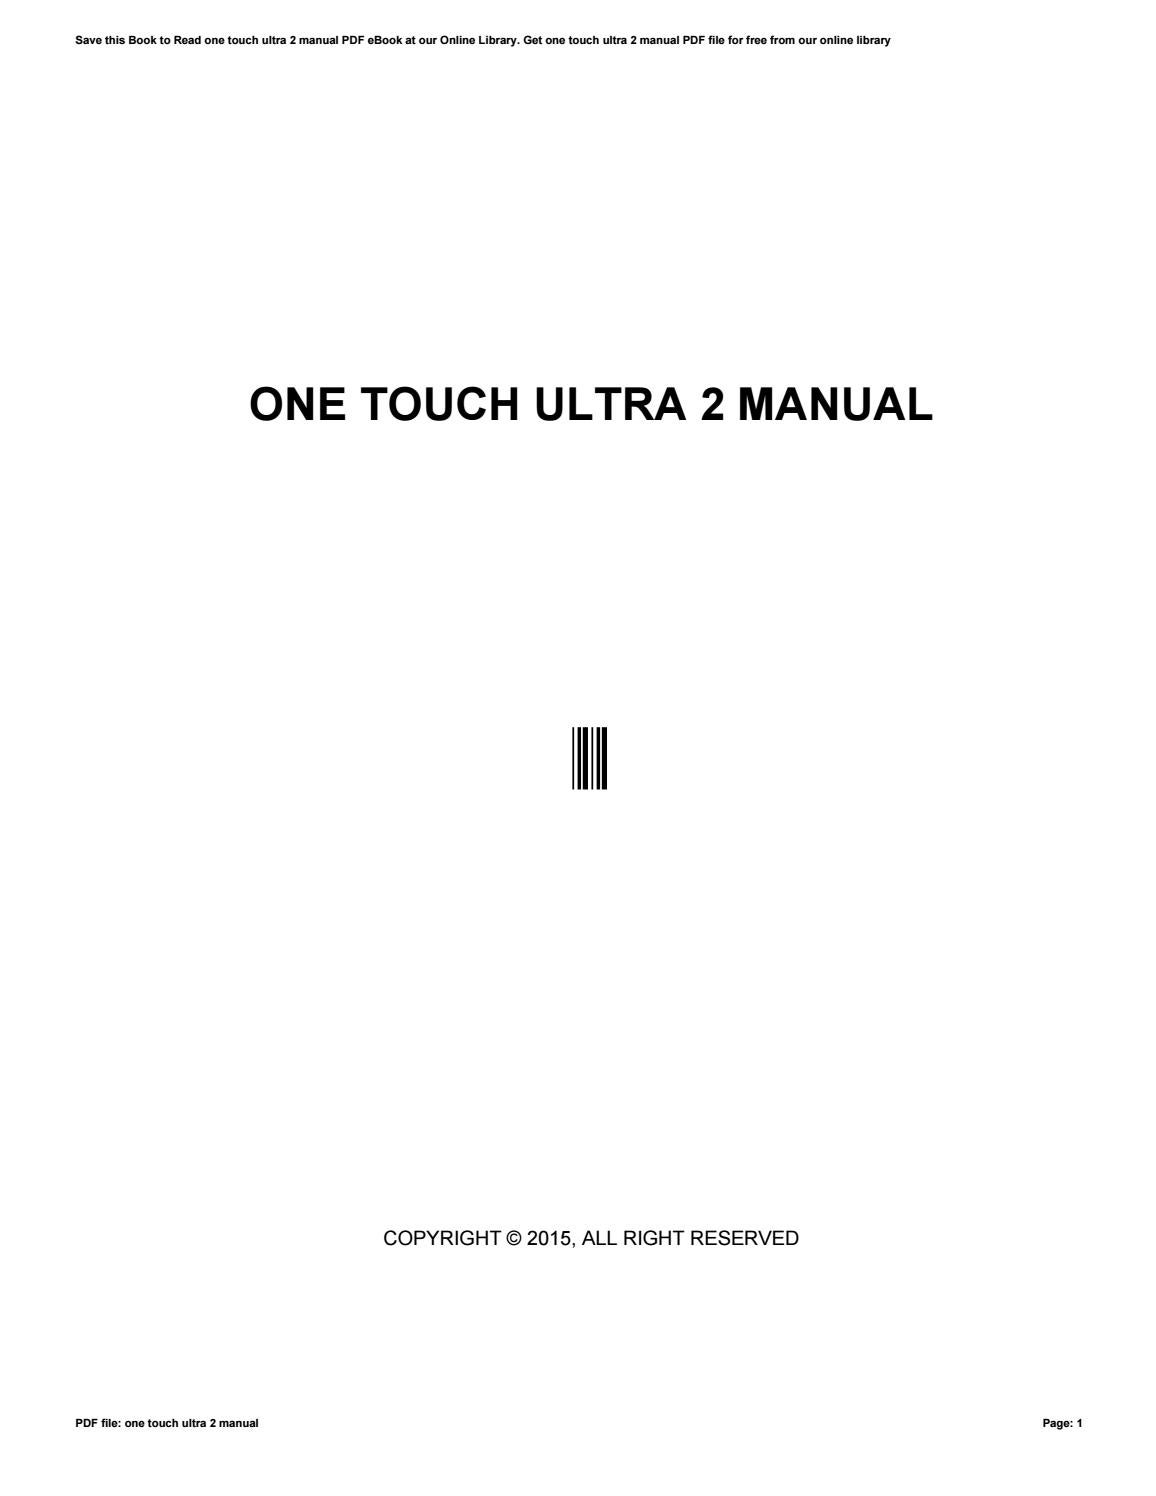 one touch ultra 2 instructions calibration